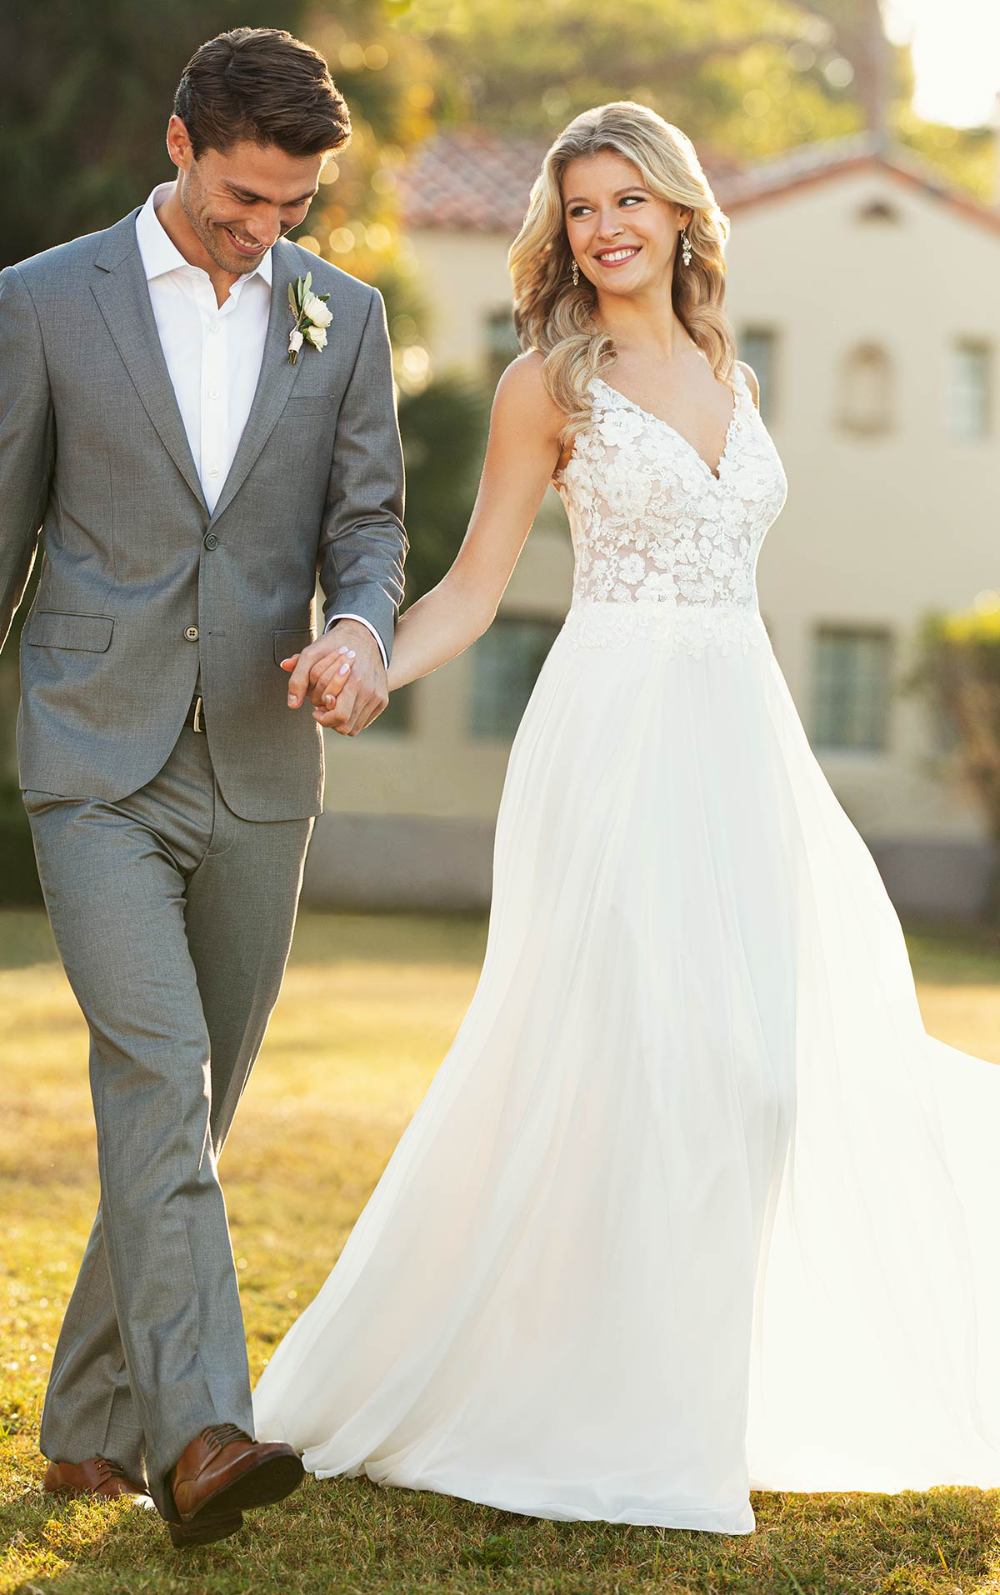 Elegant Beach Wedding Dress With Lace And Chiffon Stella York Wedding Dresses In 2020 Wedding Dresses Stella York Wedding Dress York Wedding Dress